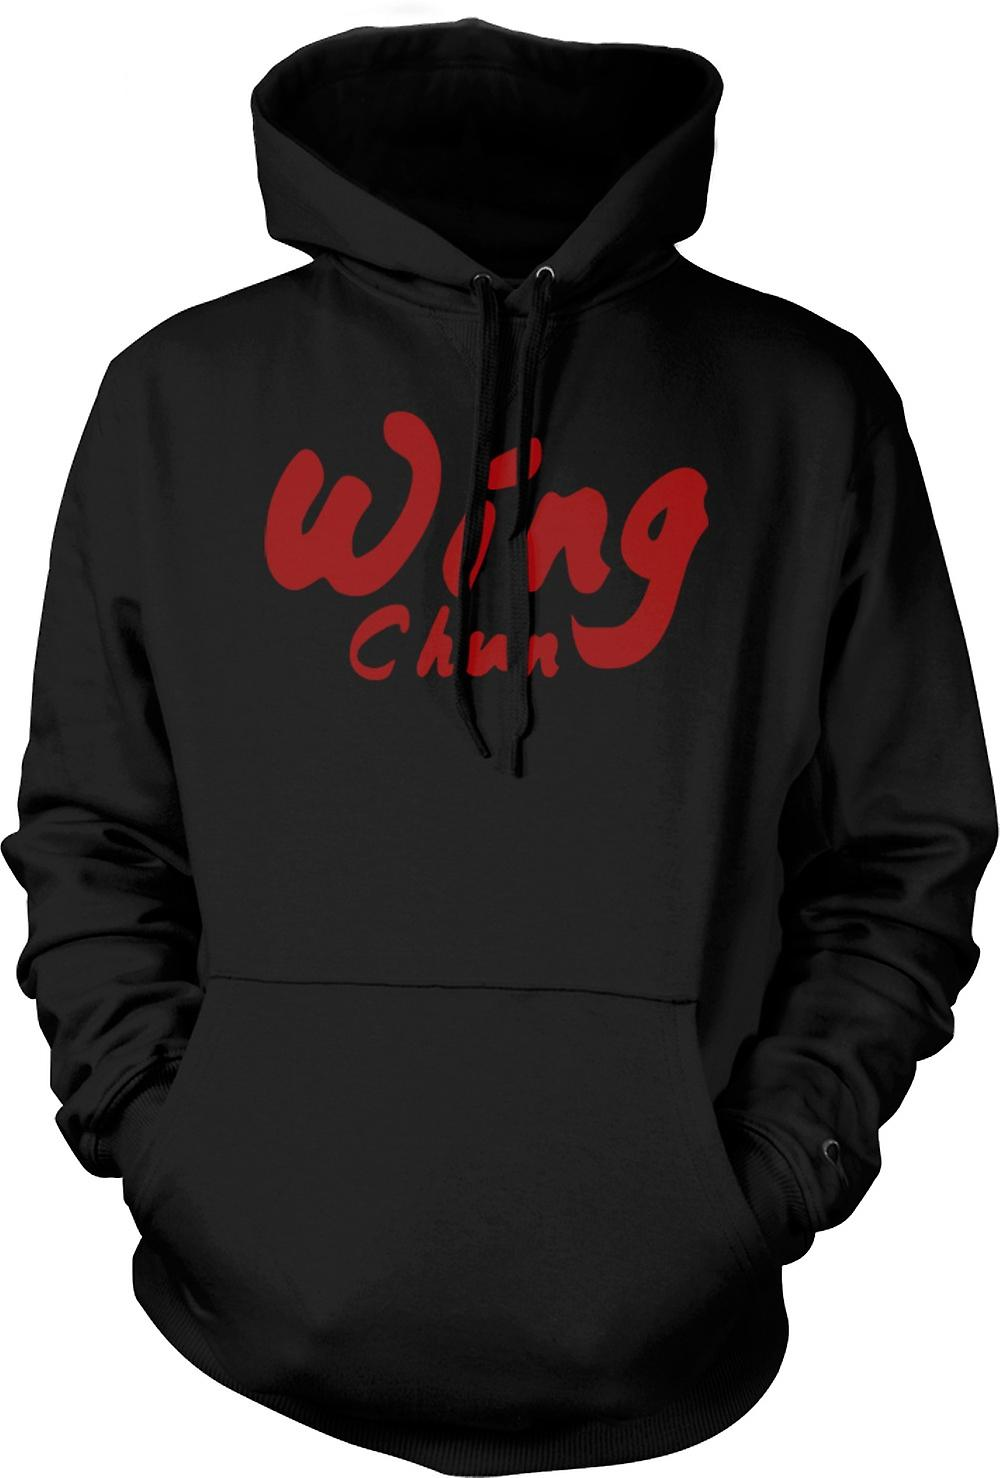 Mens Hoodie - Wing Chun - Martial Art - Slogan